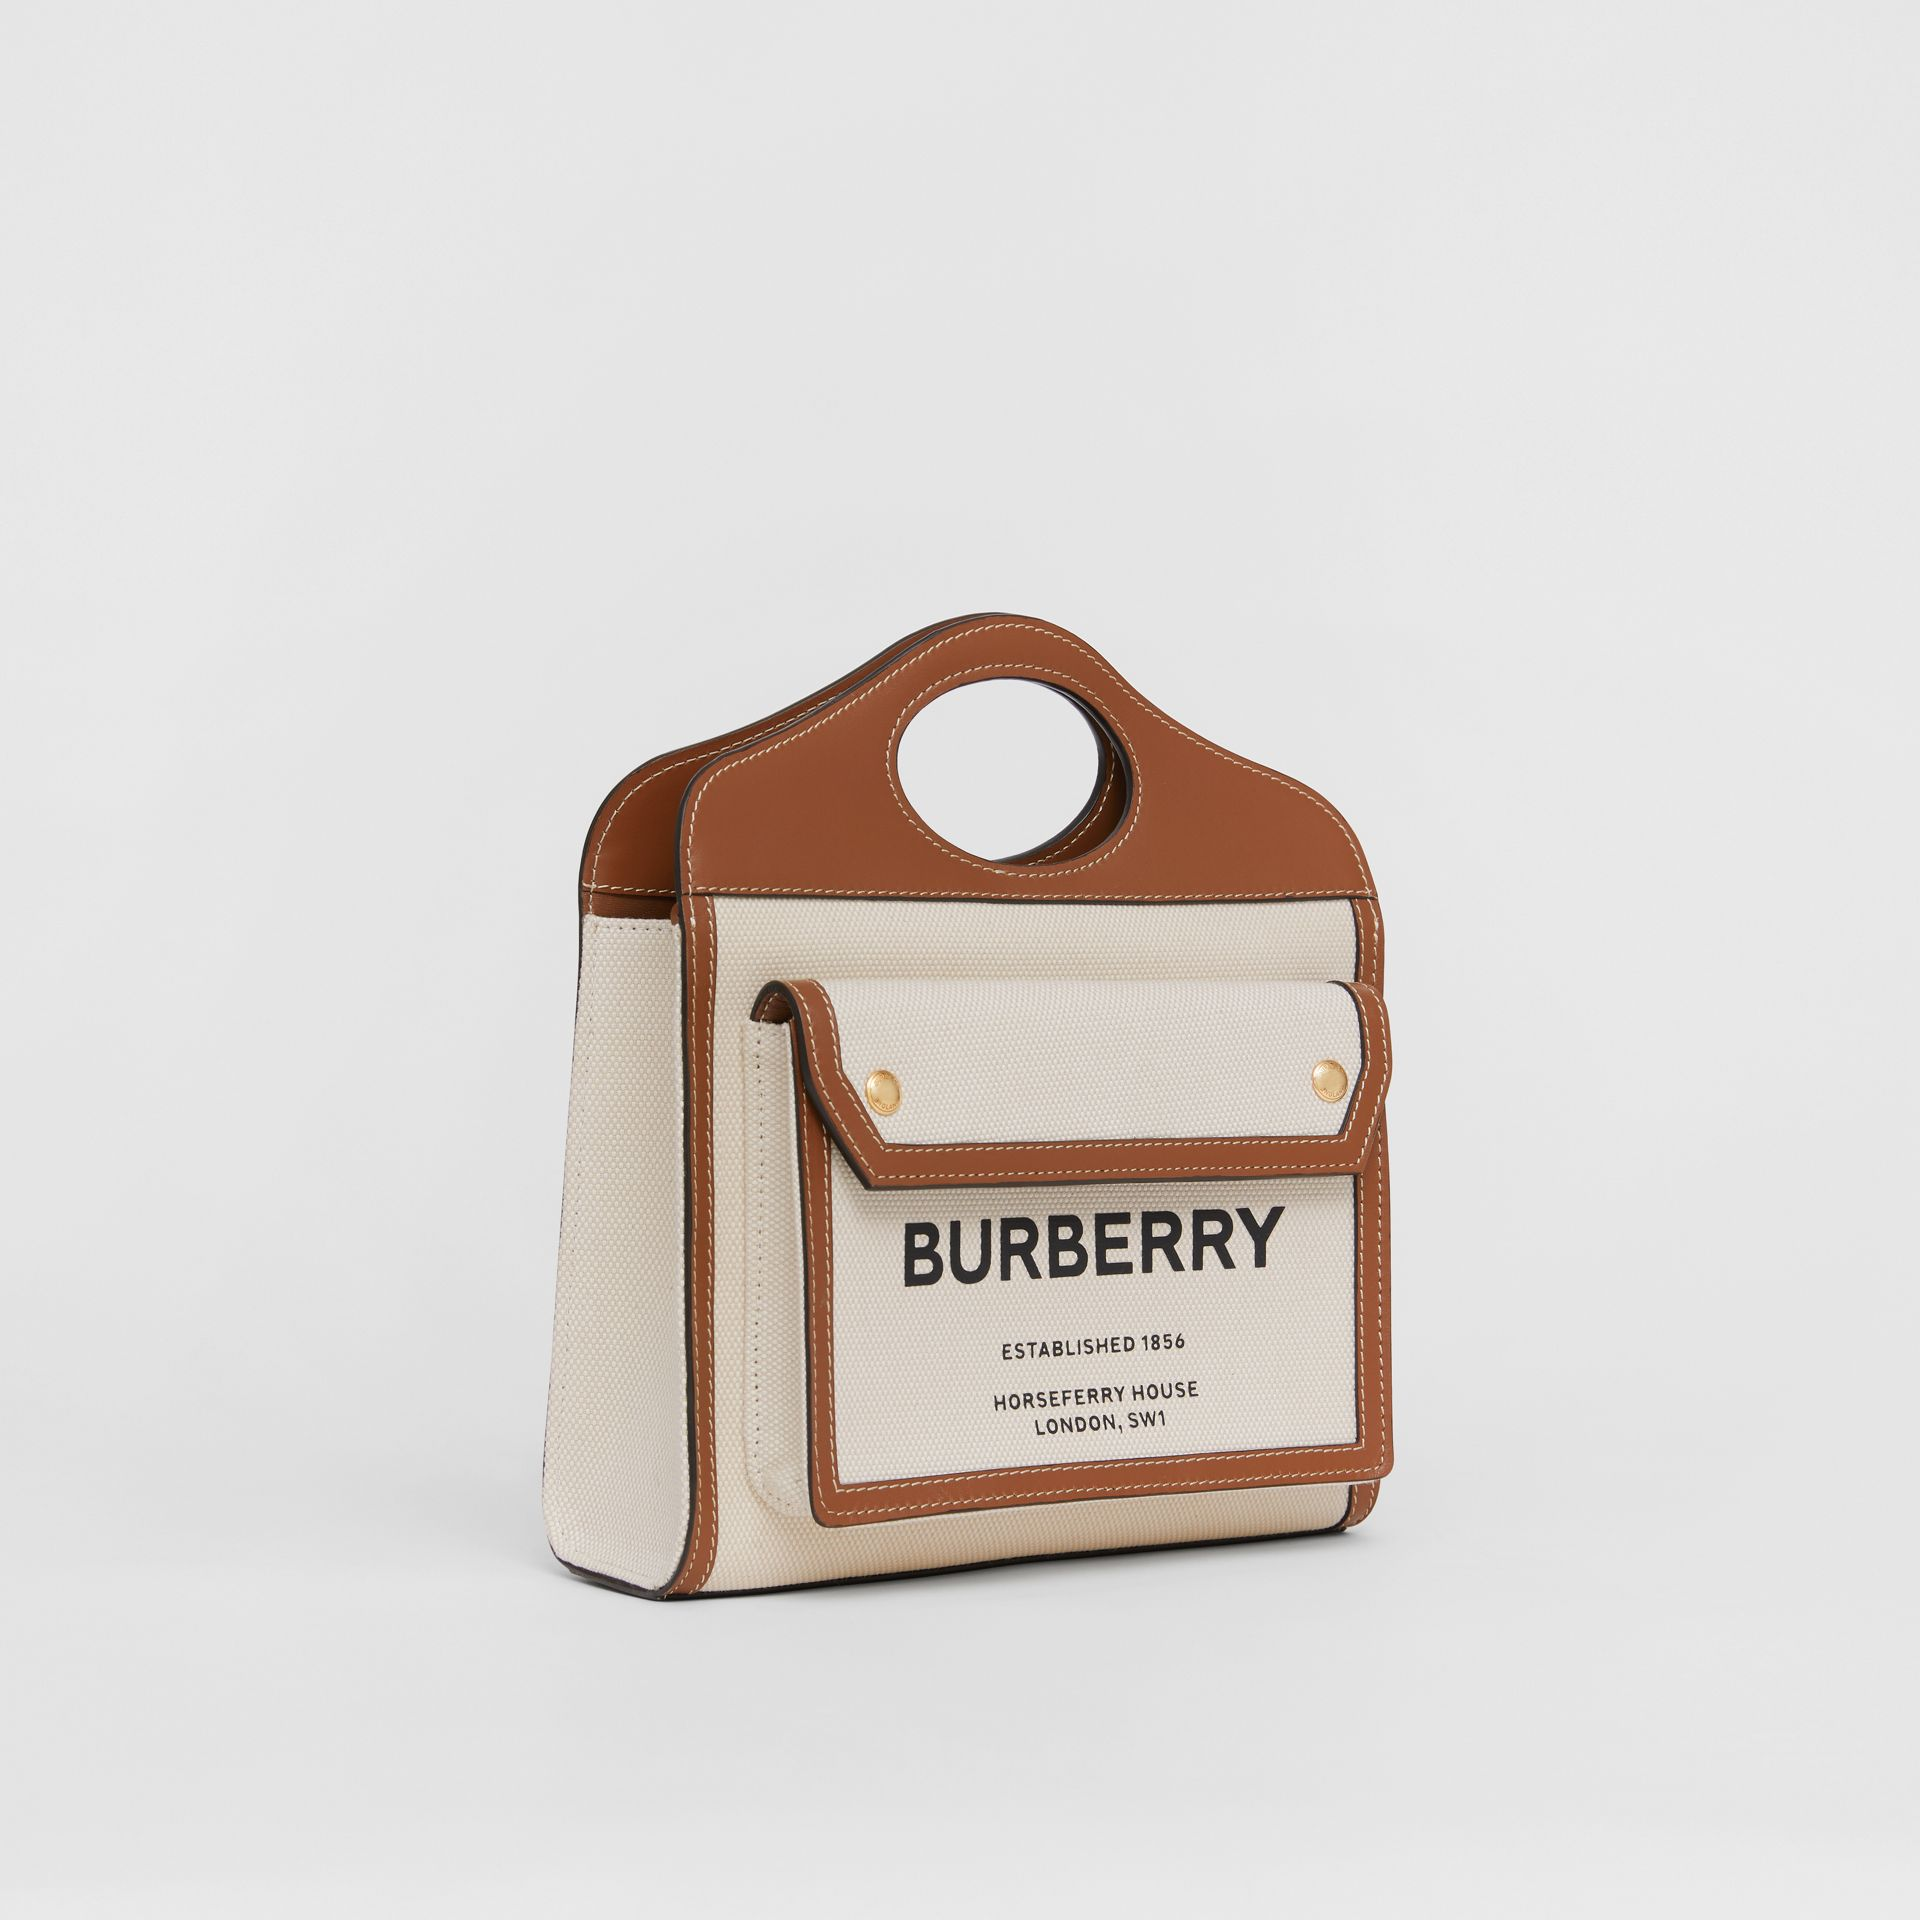 Borsa Pocket mini bicolore in tela e pelle (Naturale/marrone Malto) - Donna | Burberry - immagine della galleria 6